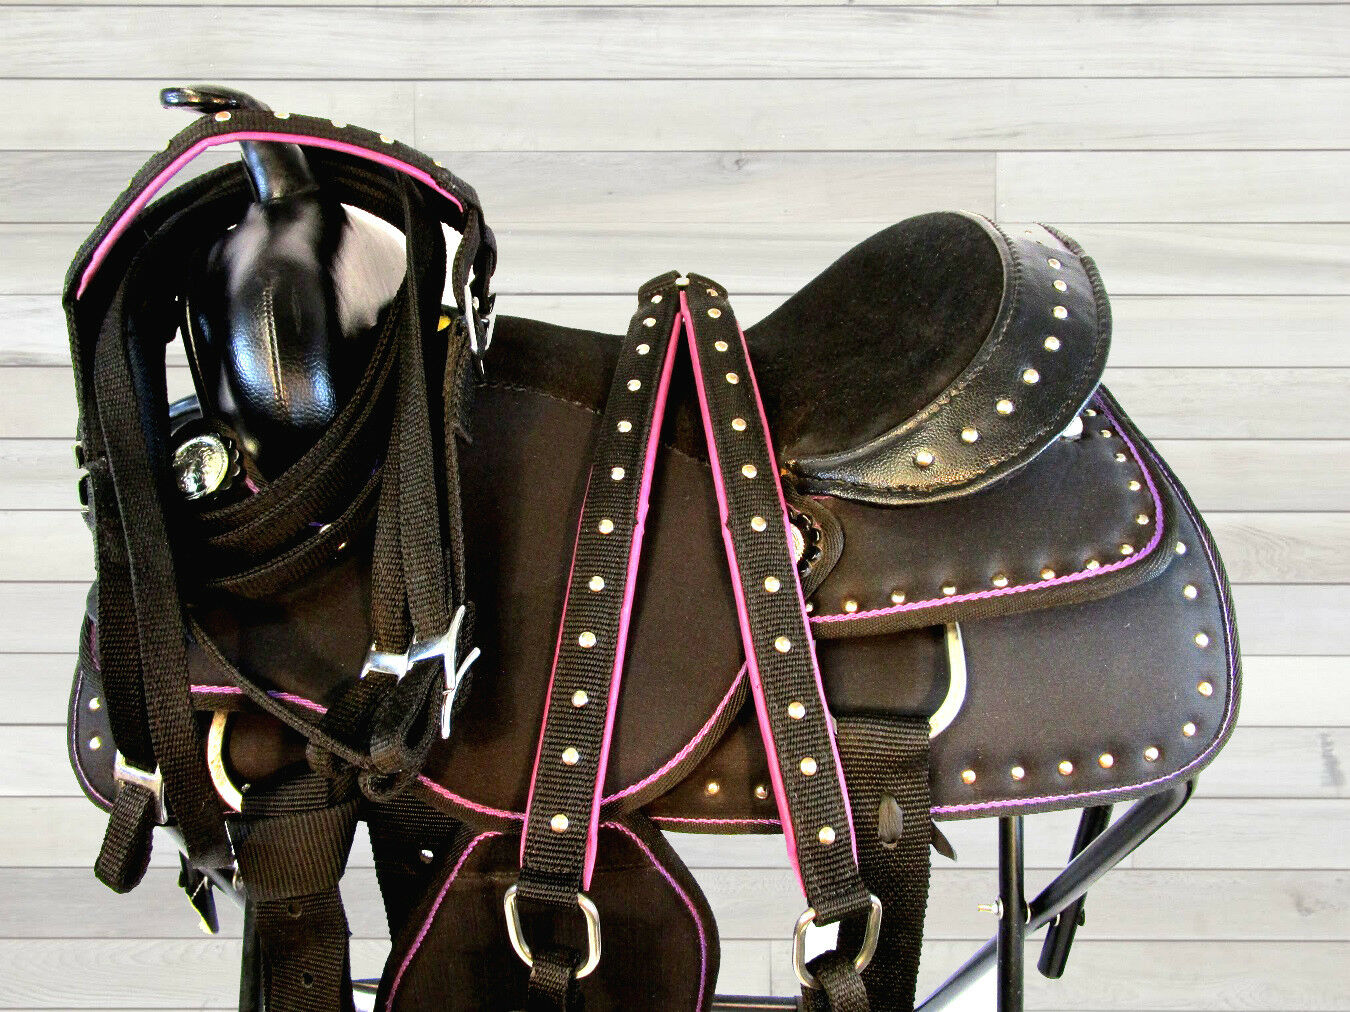 15  16 BLING SHOW PURPLE SYNTHETIC LIGHT WEIGHT WESTERN SADDLE BARREL TRAIL  save on clearance